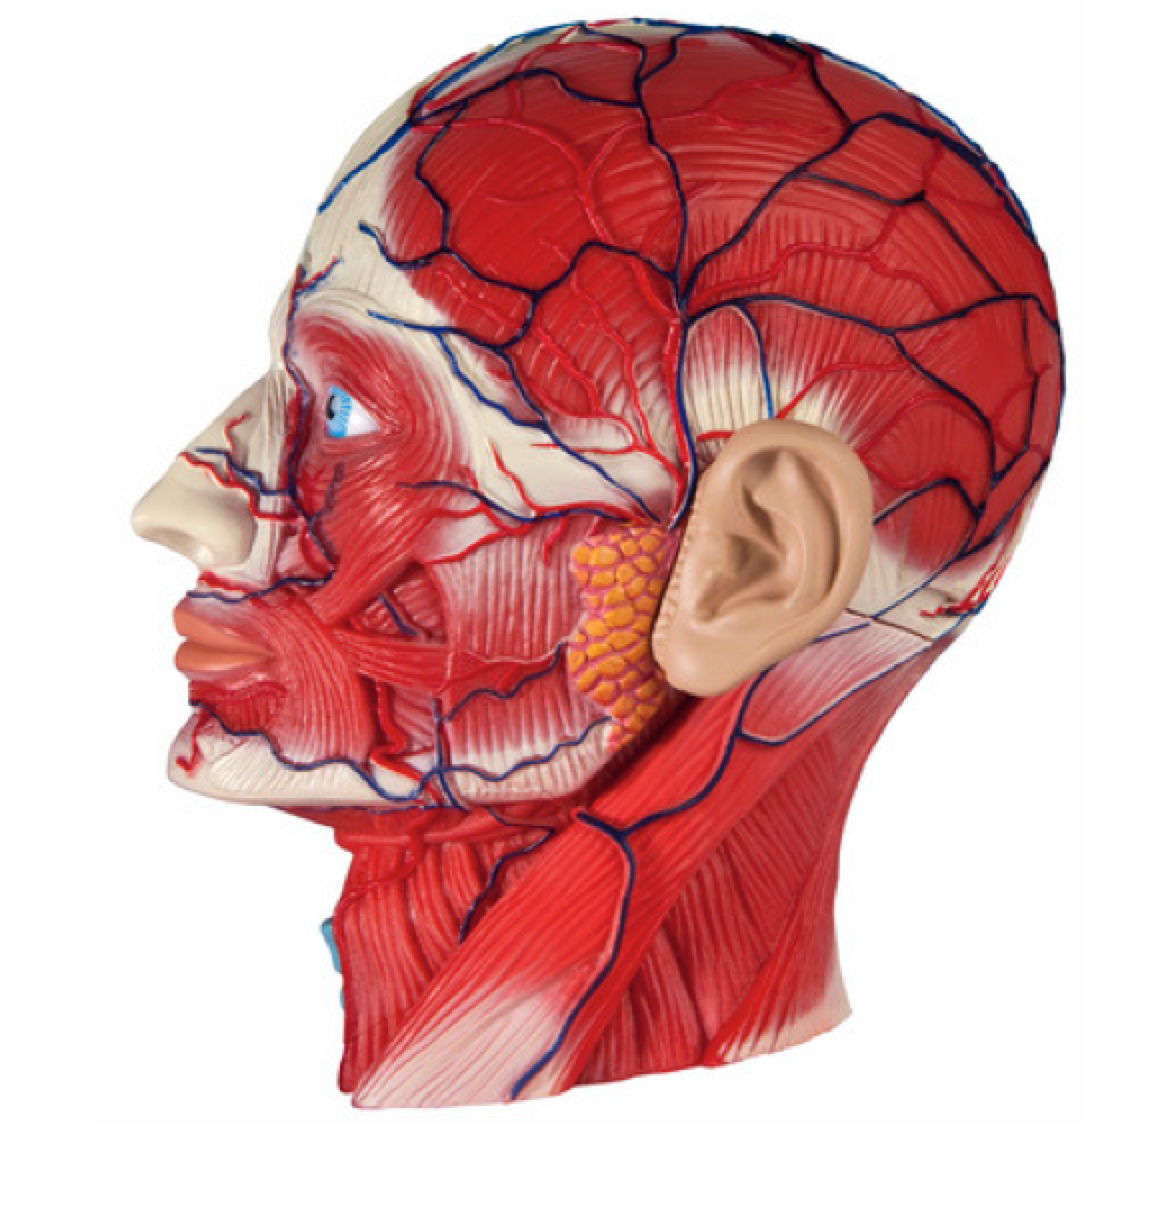 ANATOMY OF THE HEAD AND FACE